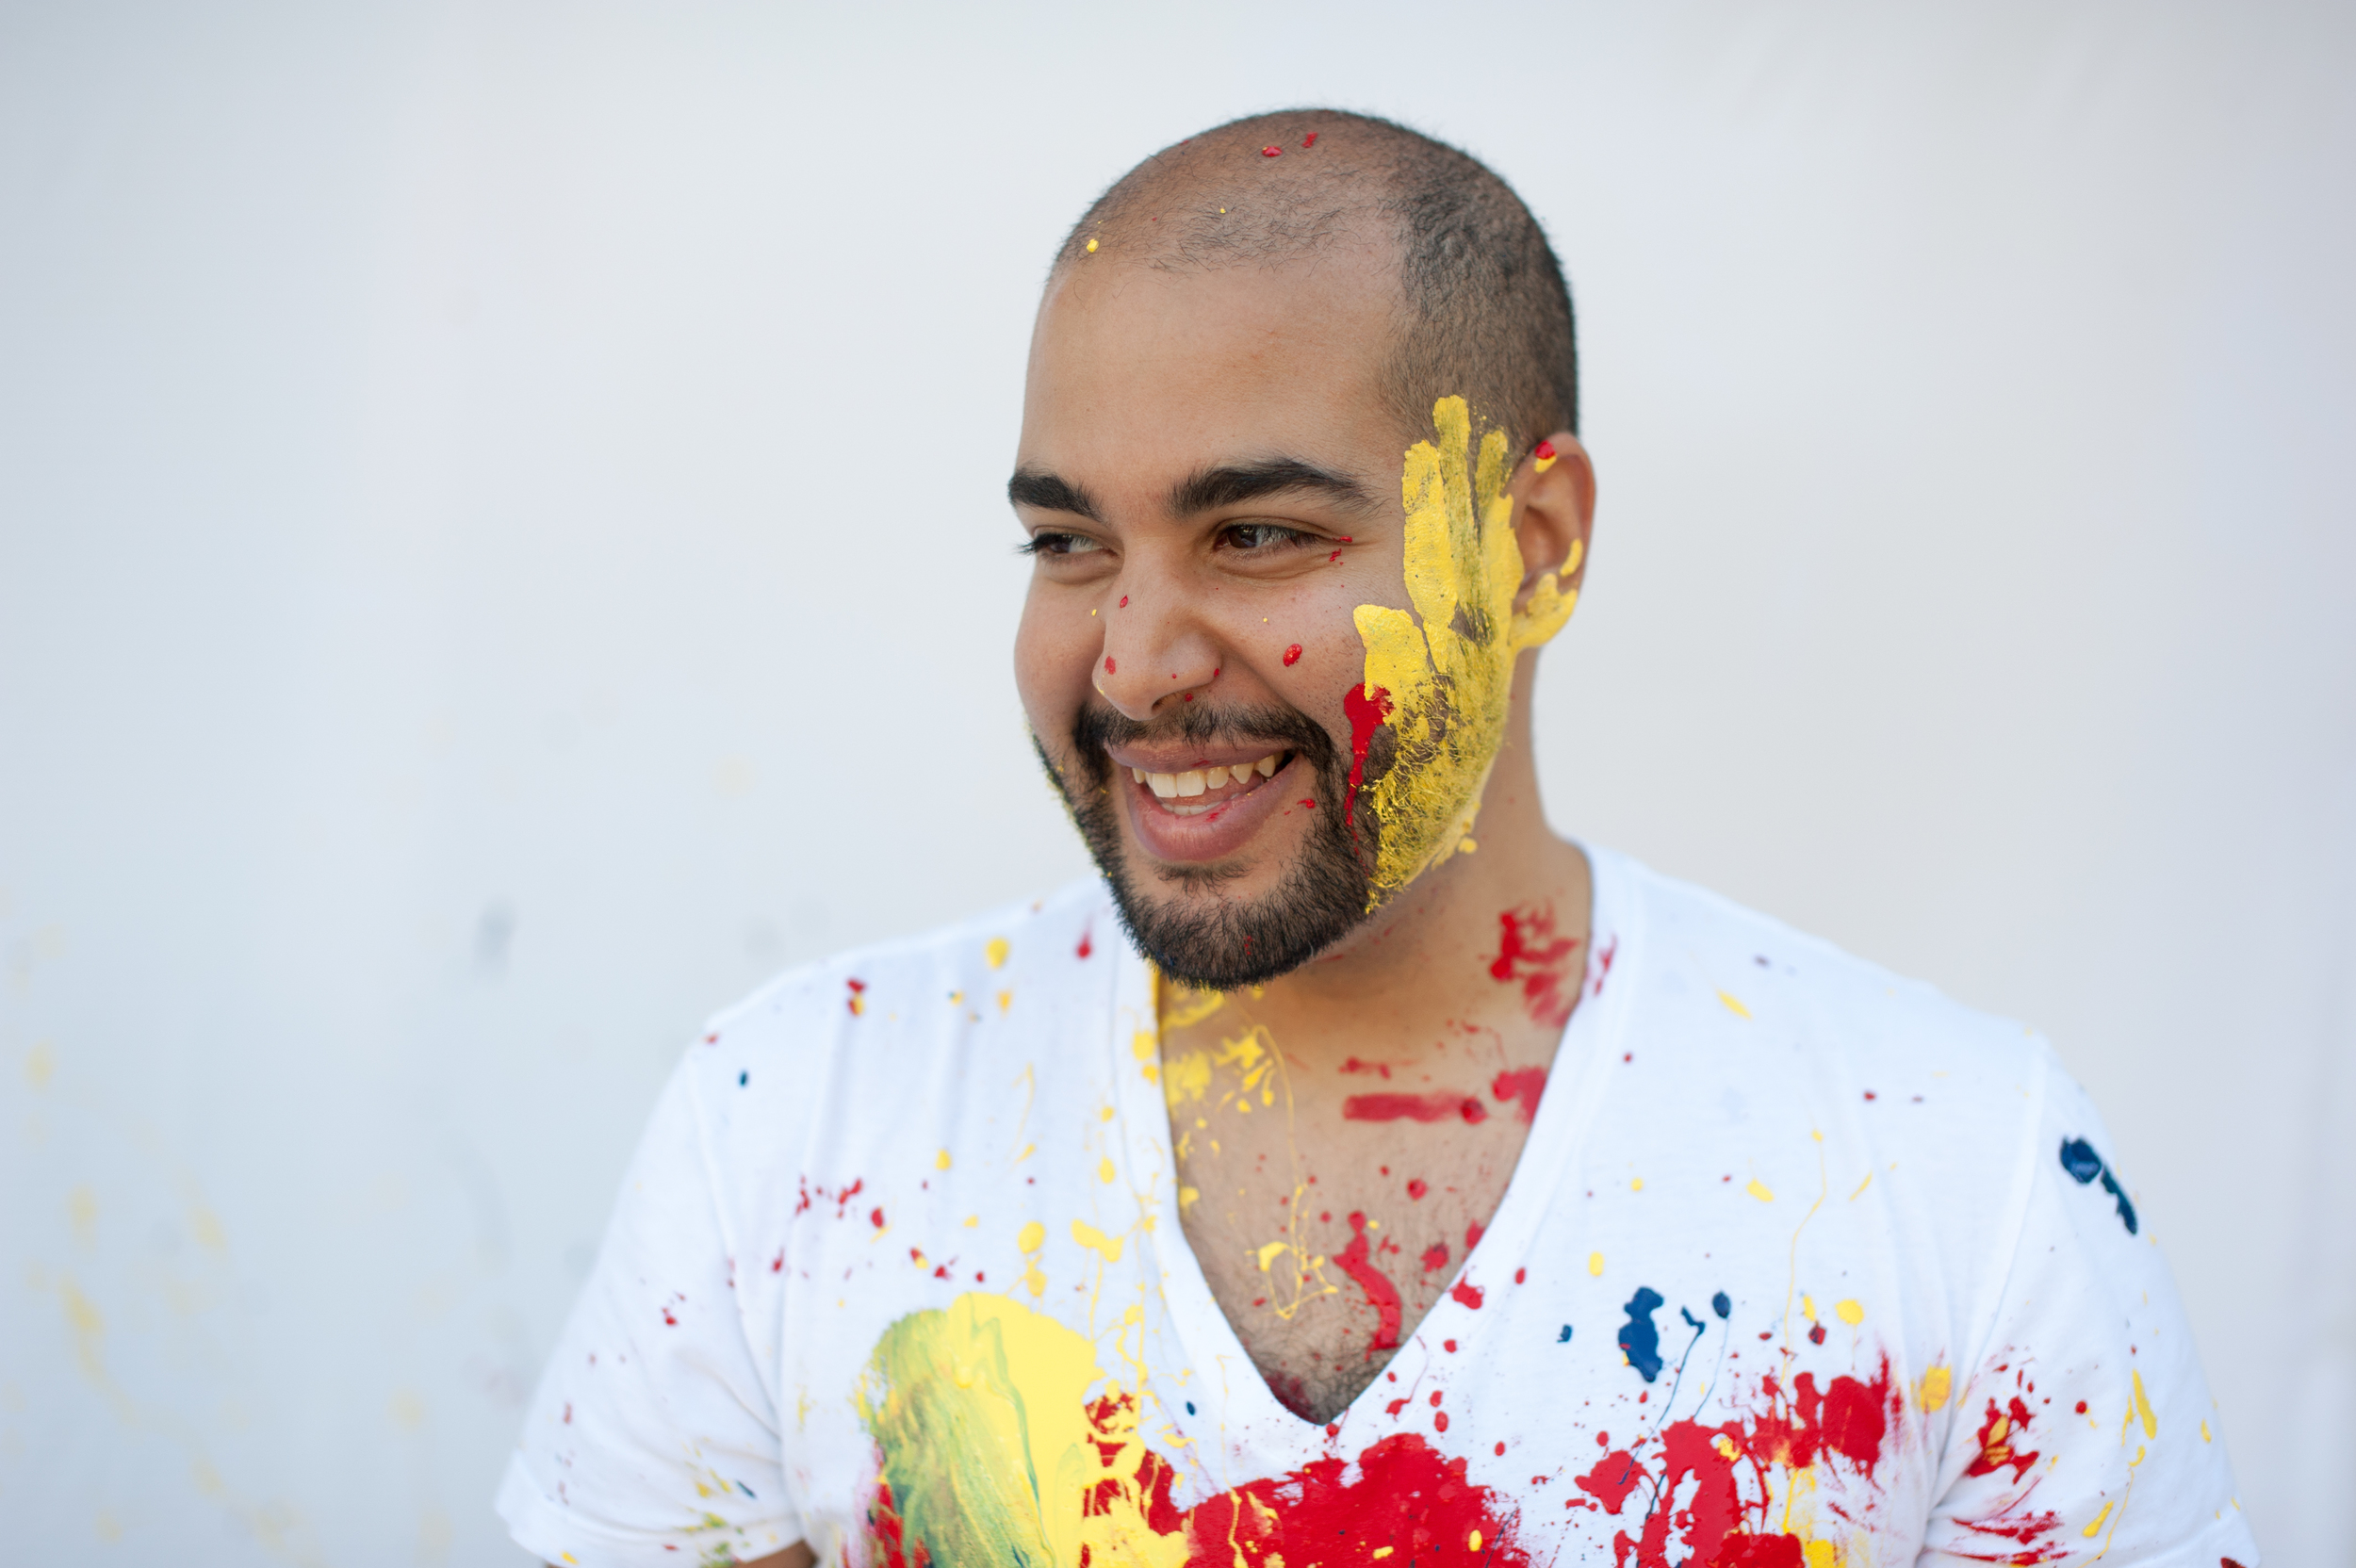 Paint War Engagement Session by Mantas Kubilinskas-12.jpg